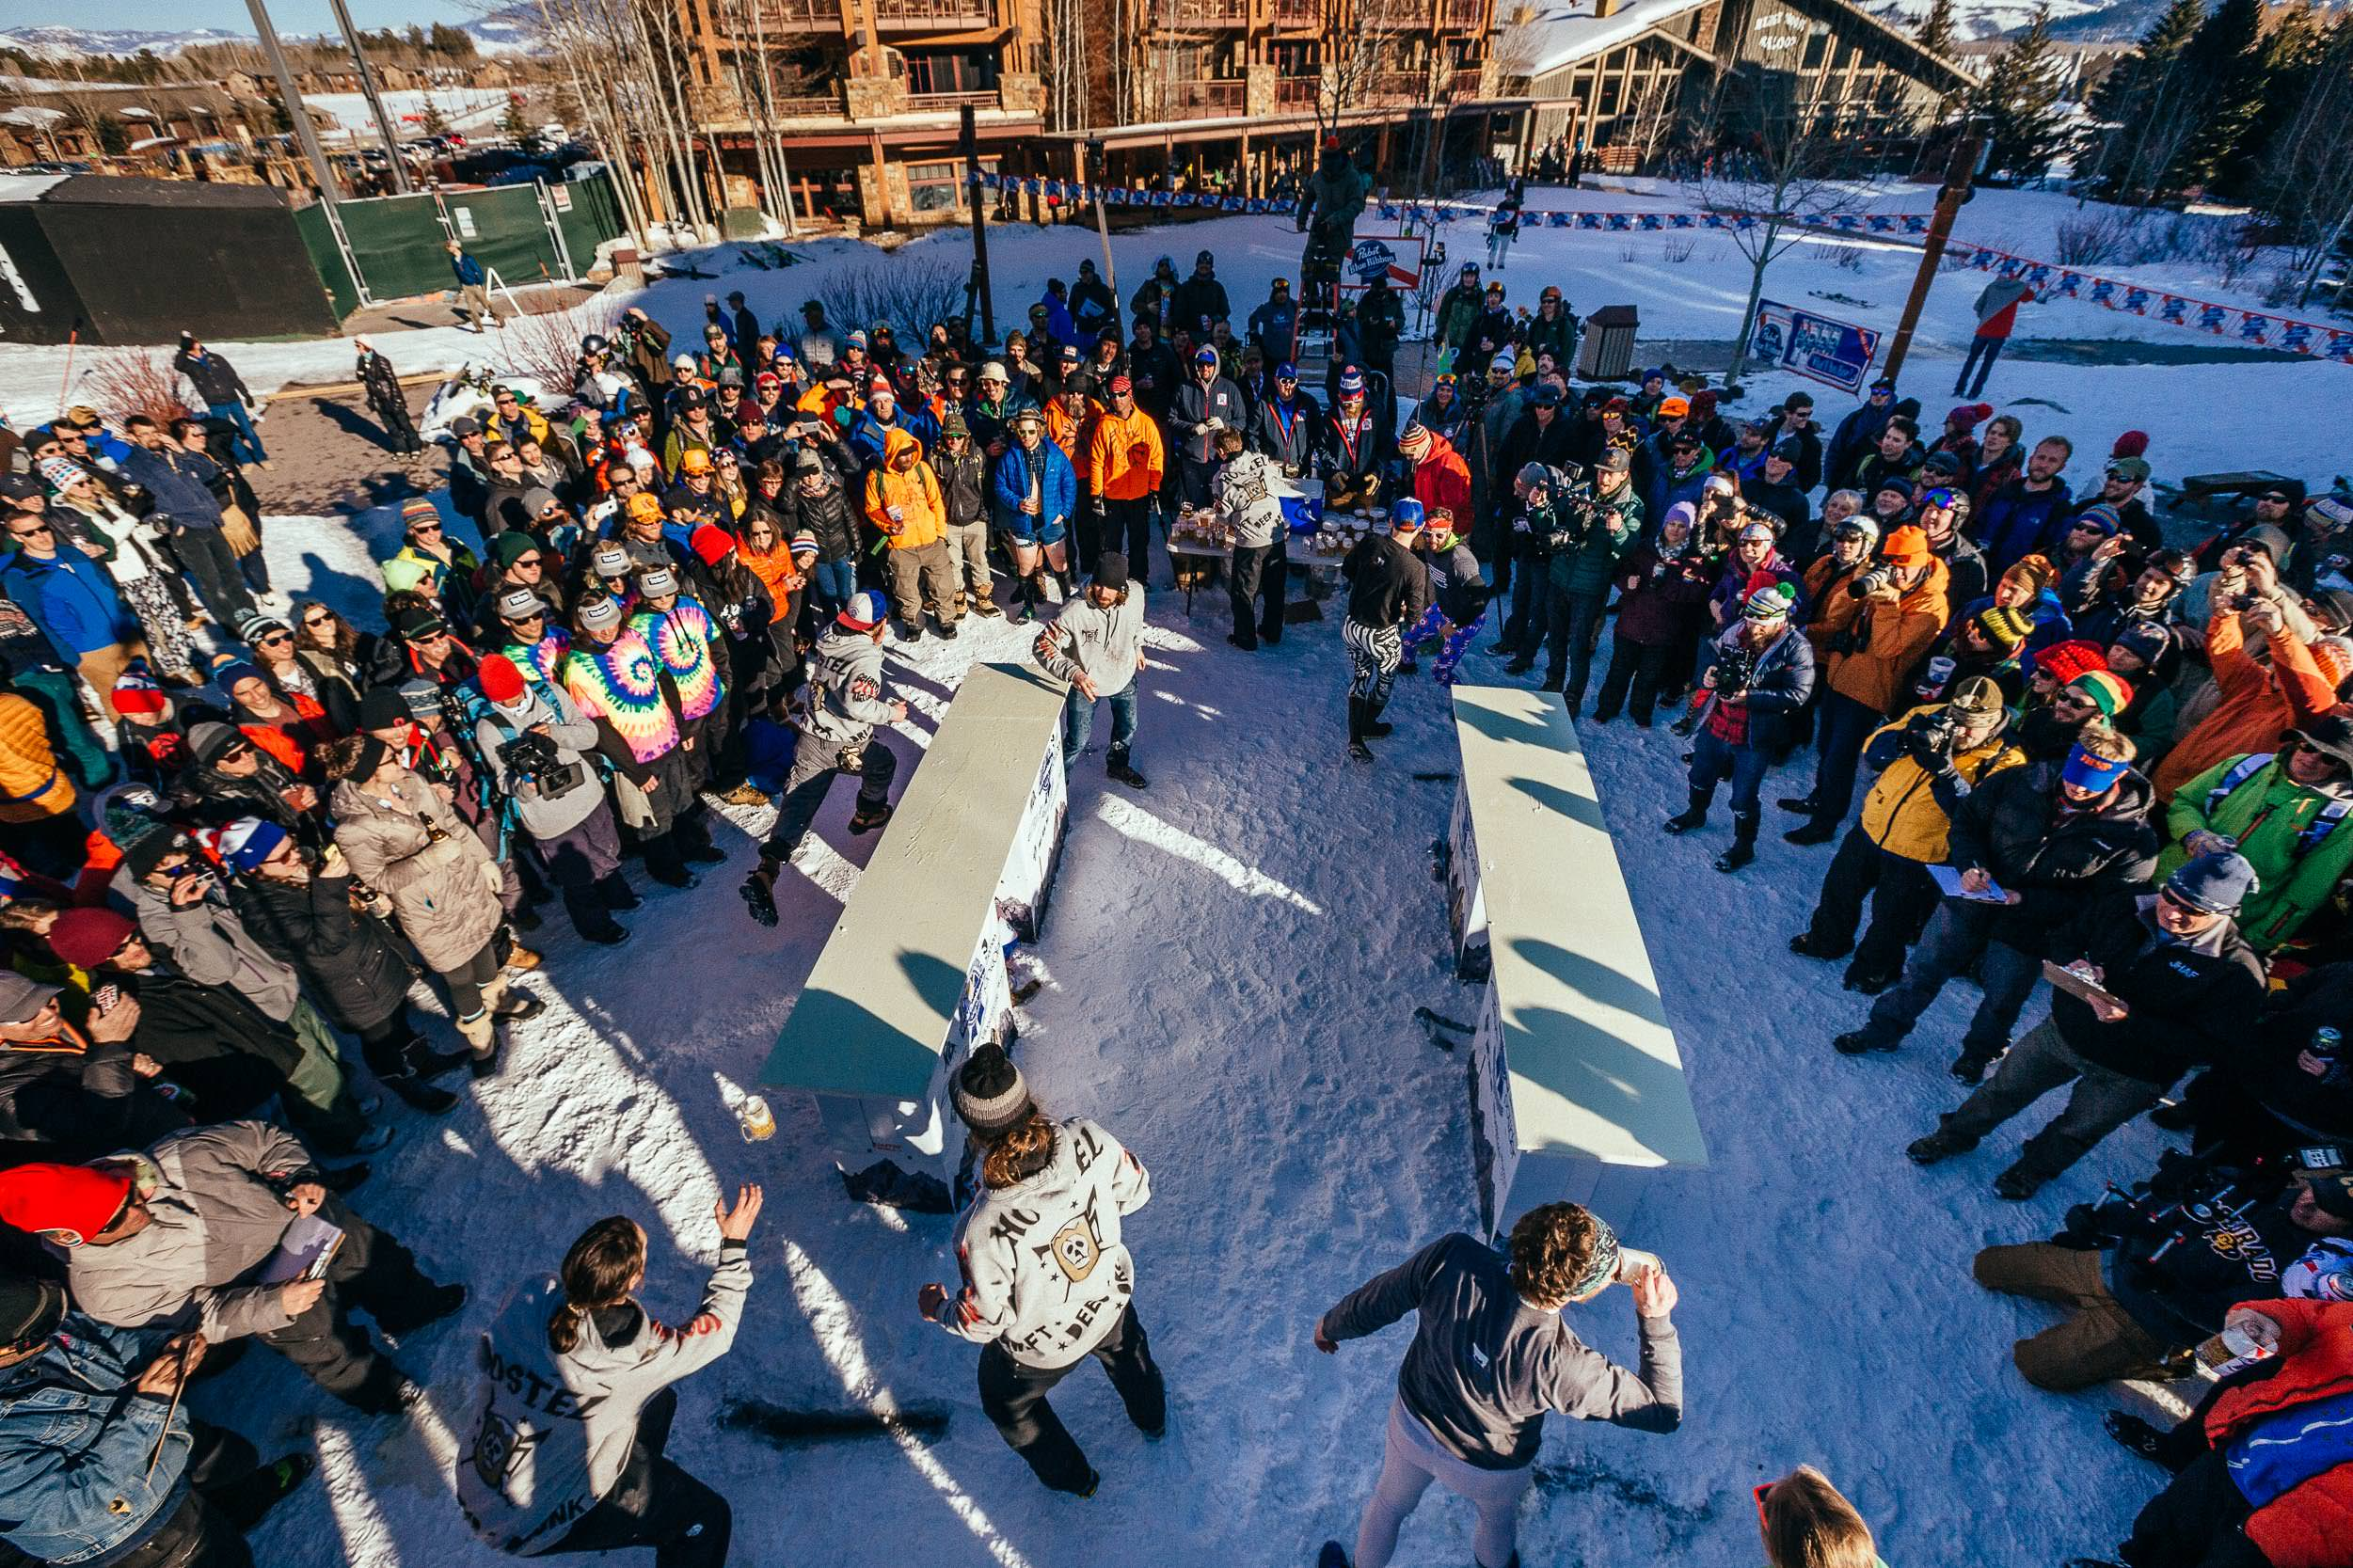 Team Hostel X vs. Team Local in round one of the 2015 Gelande Quaff in Teton Village, Wyoming